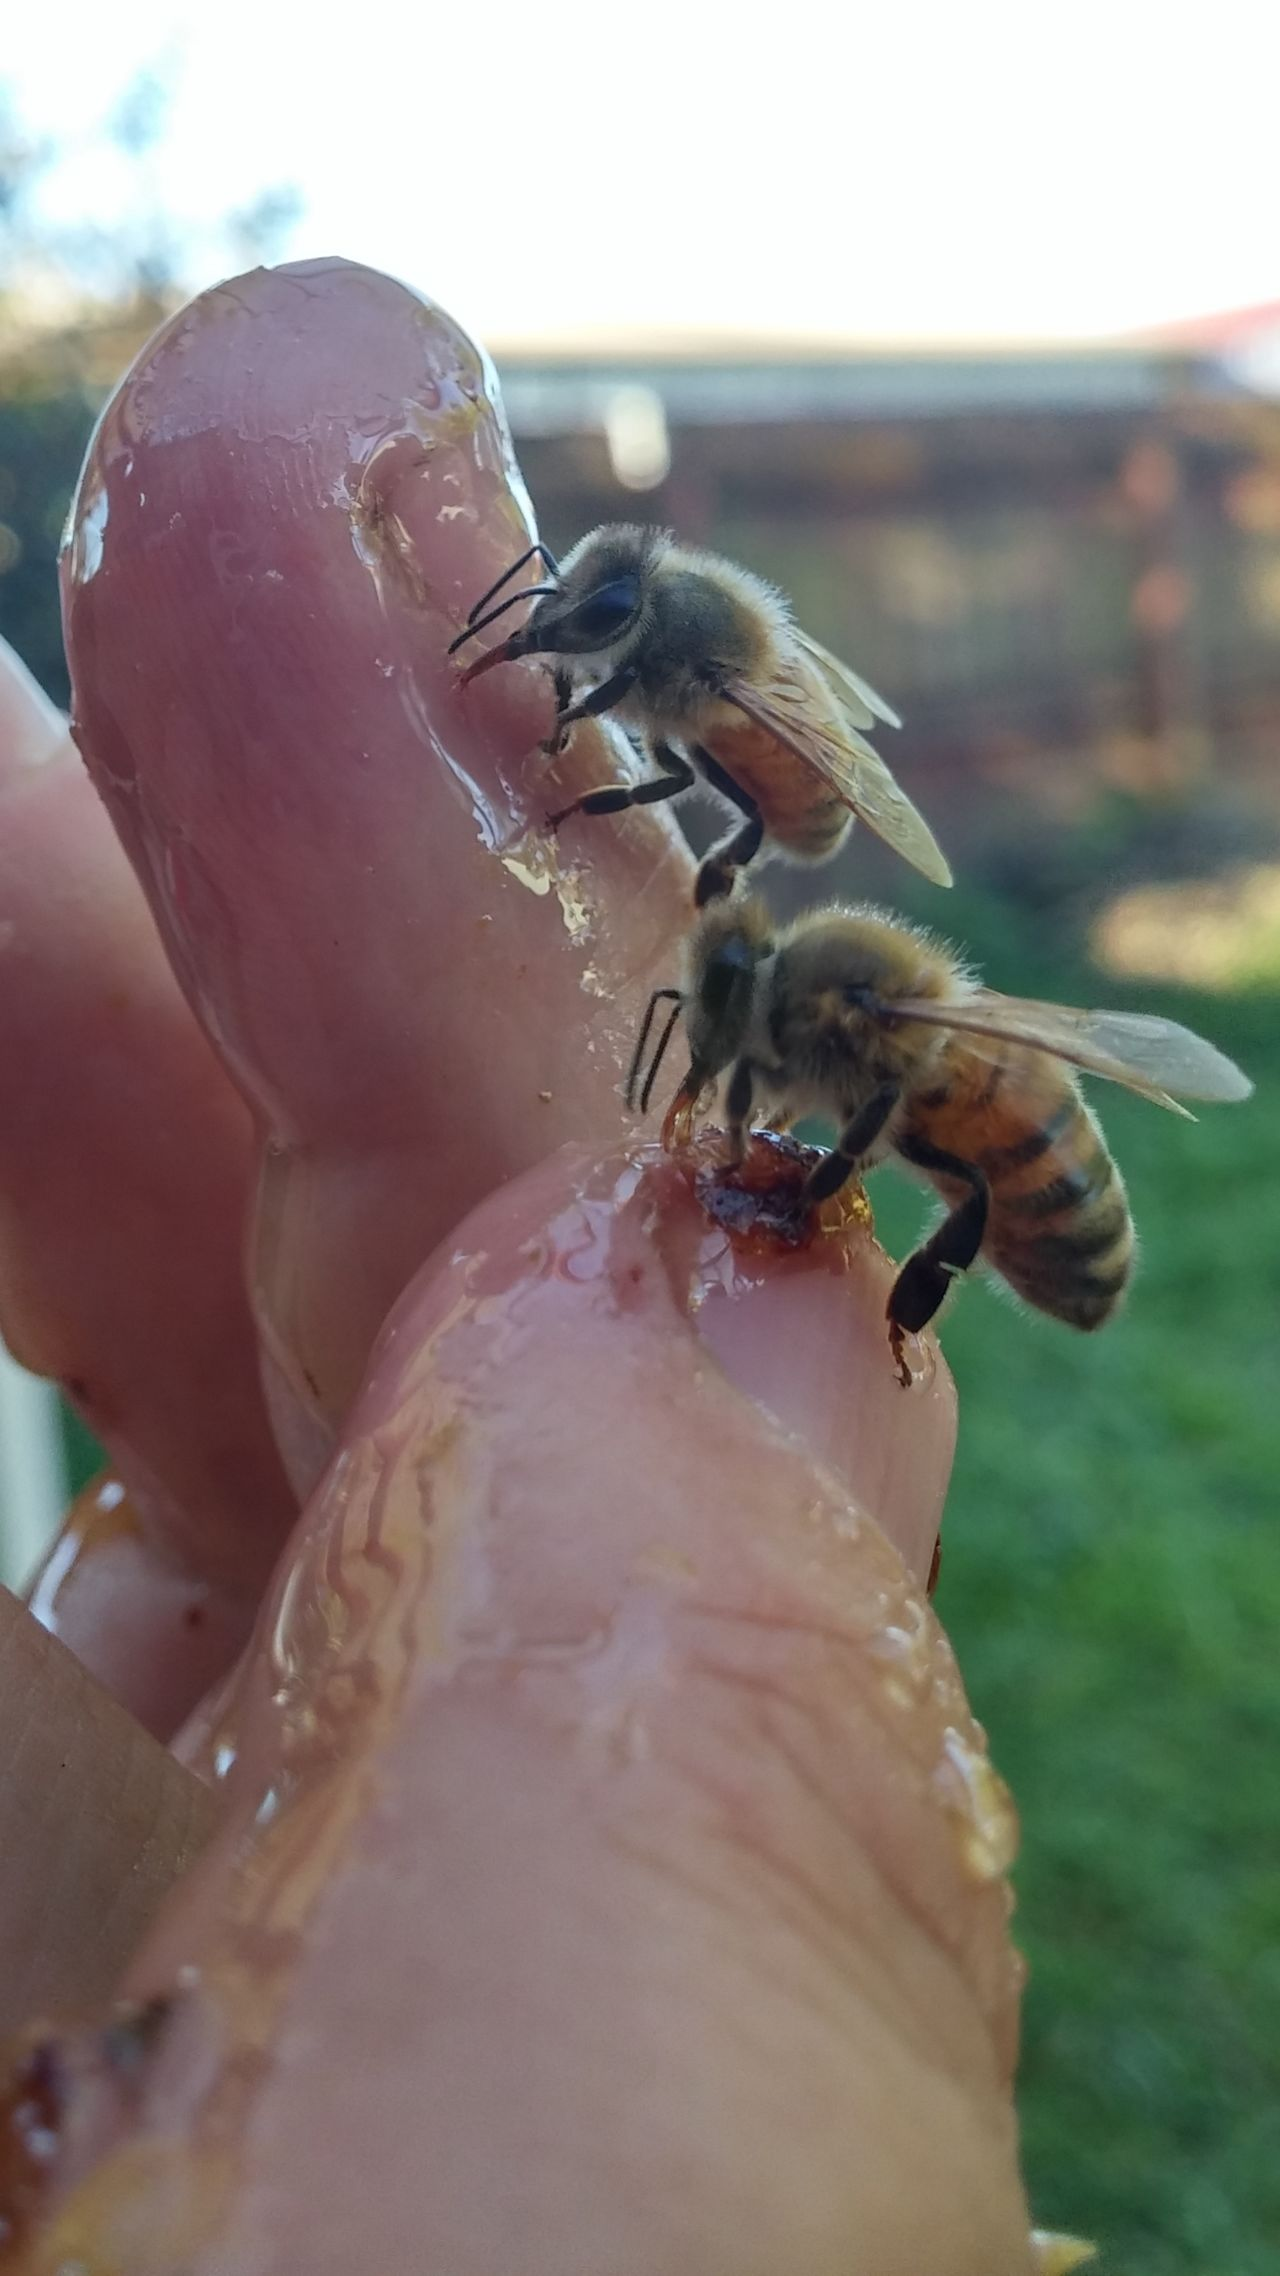 And i see you too Insect Close-up Day Nature Bee Outdoors Summer In New Zealand I See You Women Who Inspire You Hanging Hallo Yves Bees🐝 Perching Food Feeding  Insect Theme Human Body Part Focus On Foreground